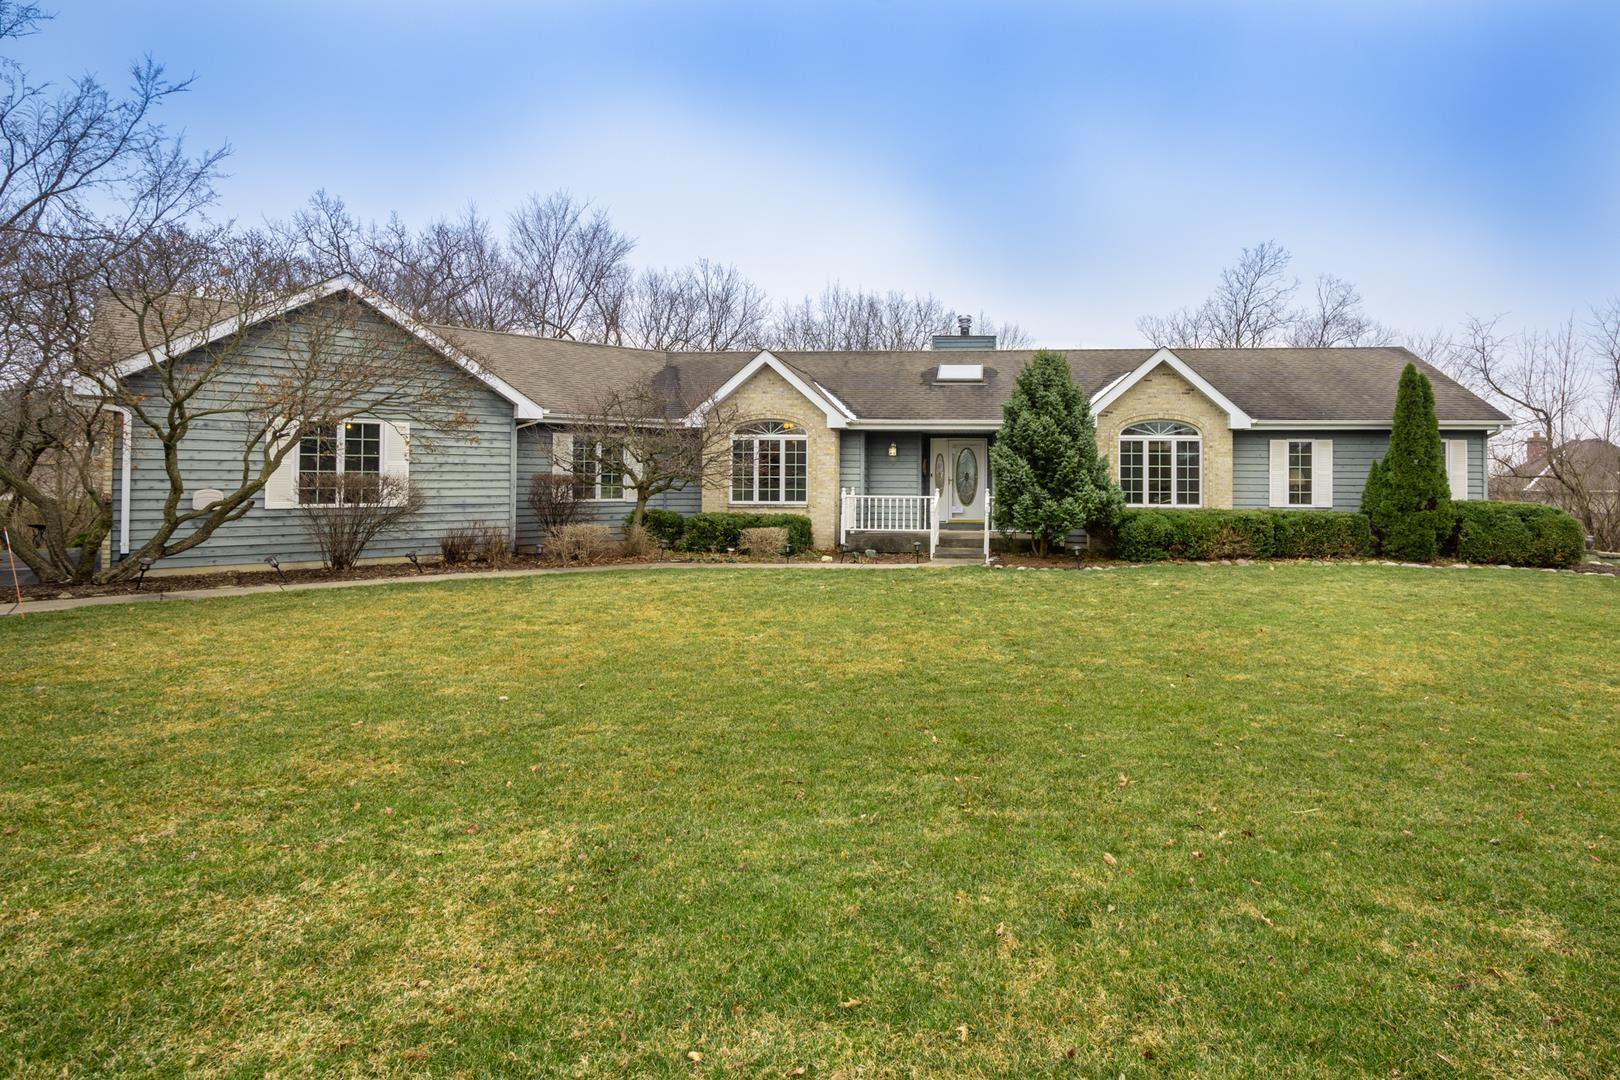 1251 Crown Fox Lane, New Lenox, IL 60451 - #: 11024610